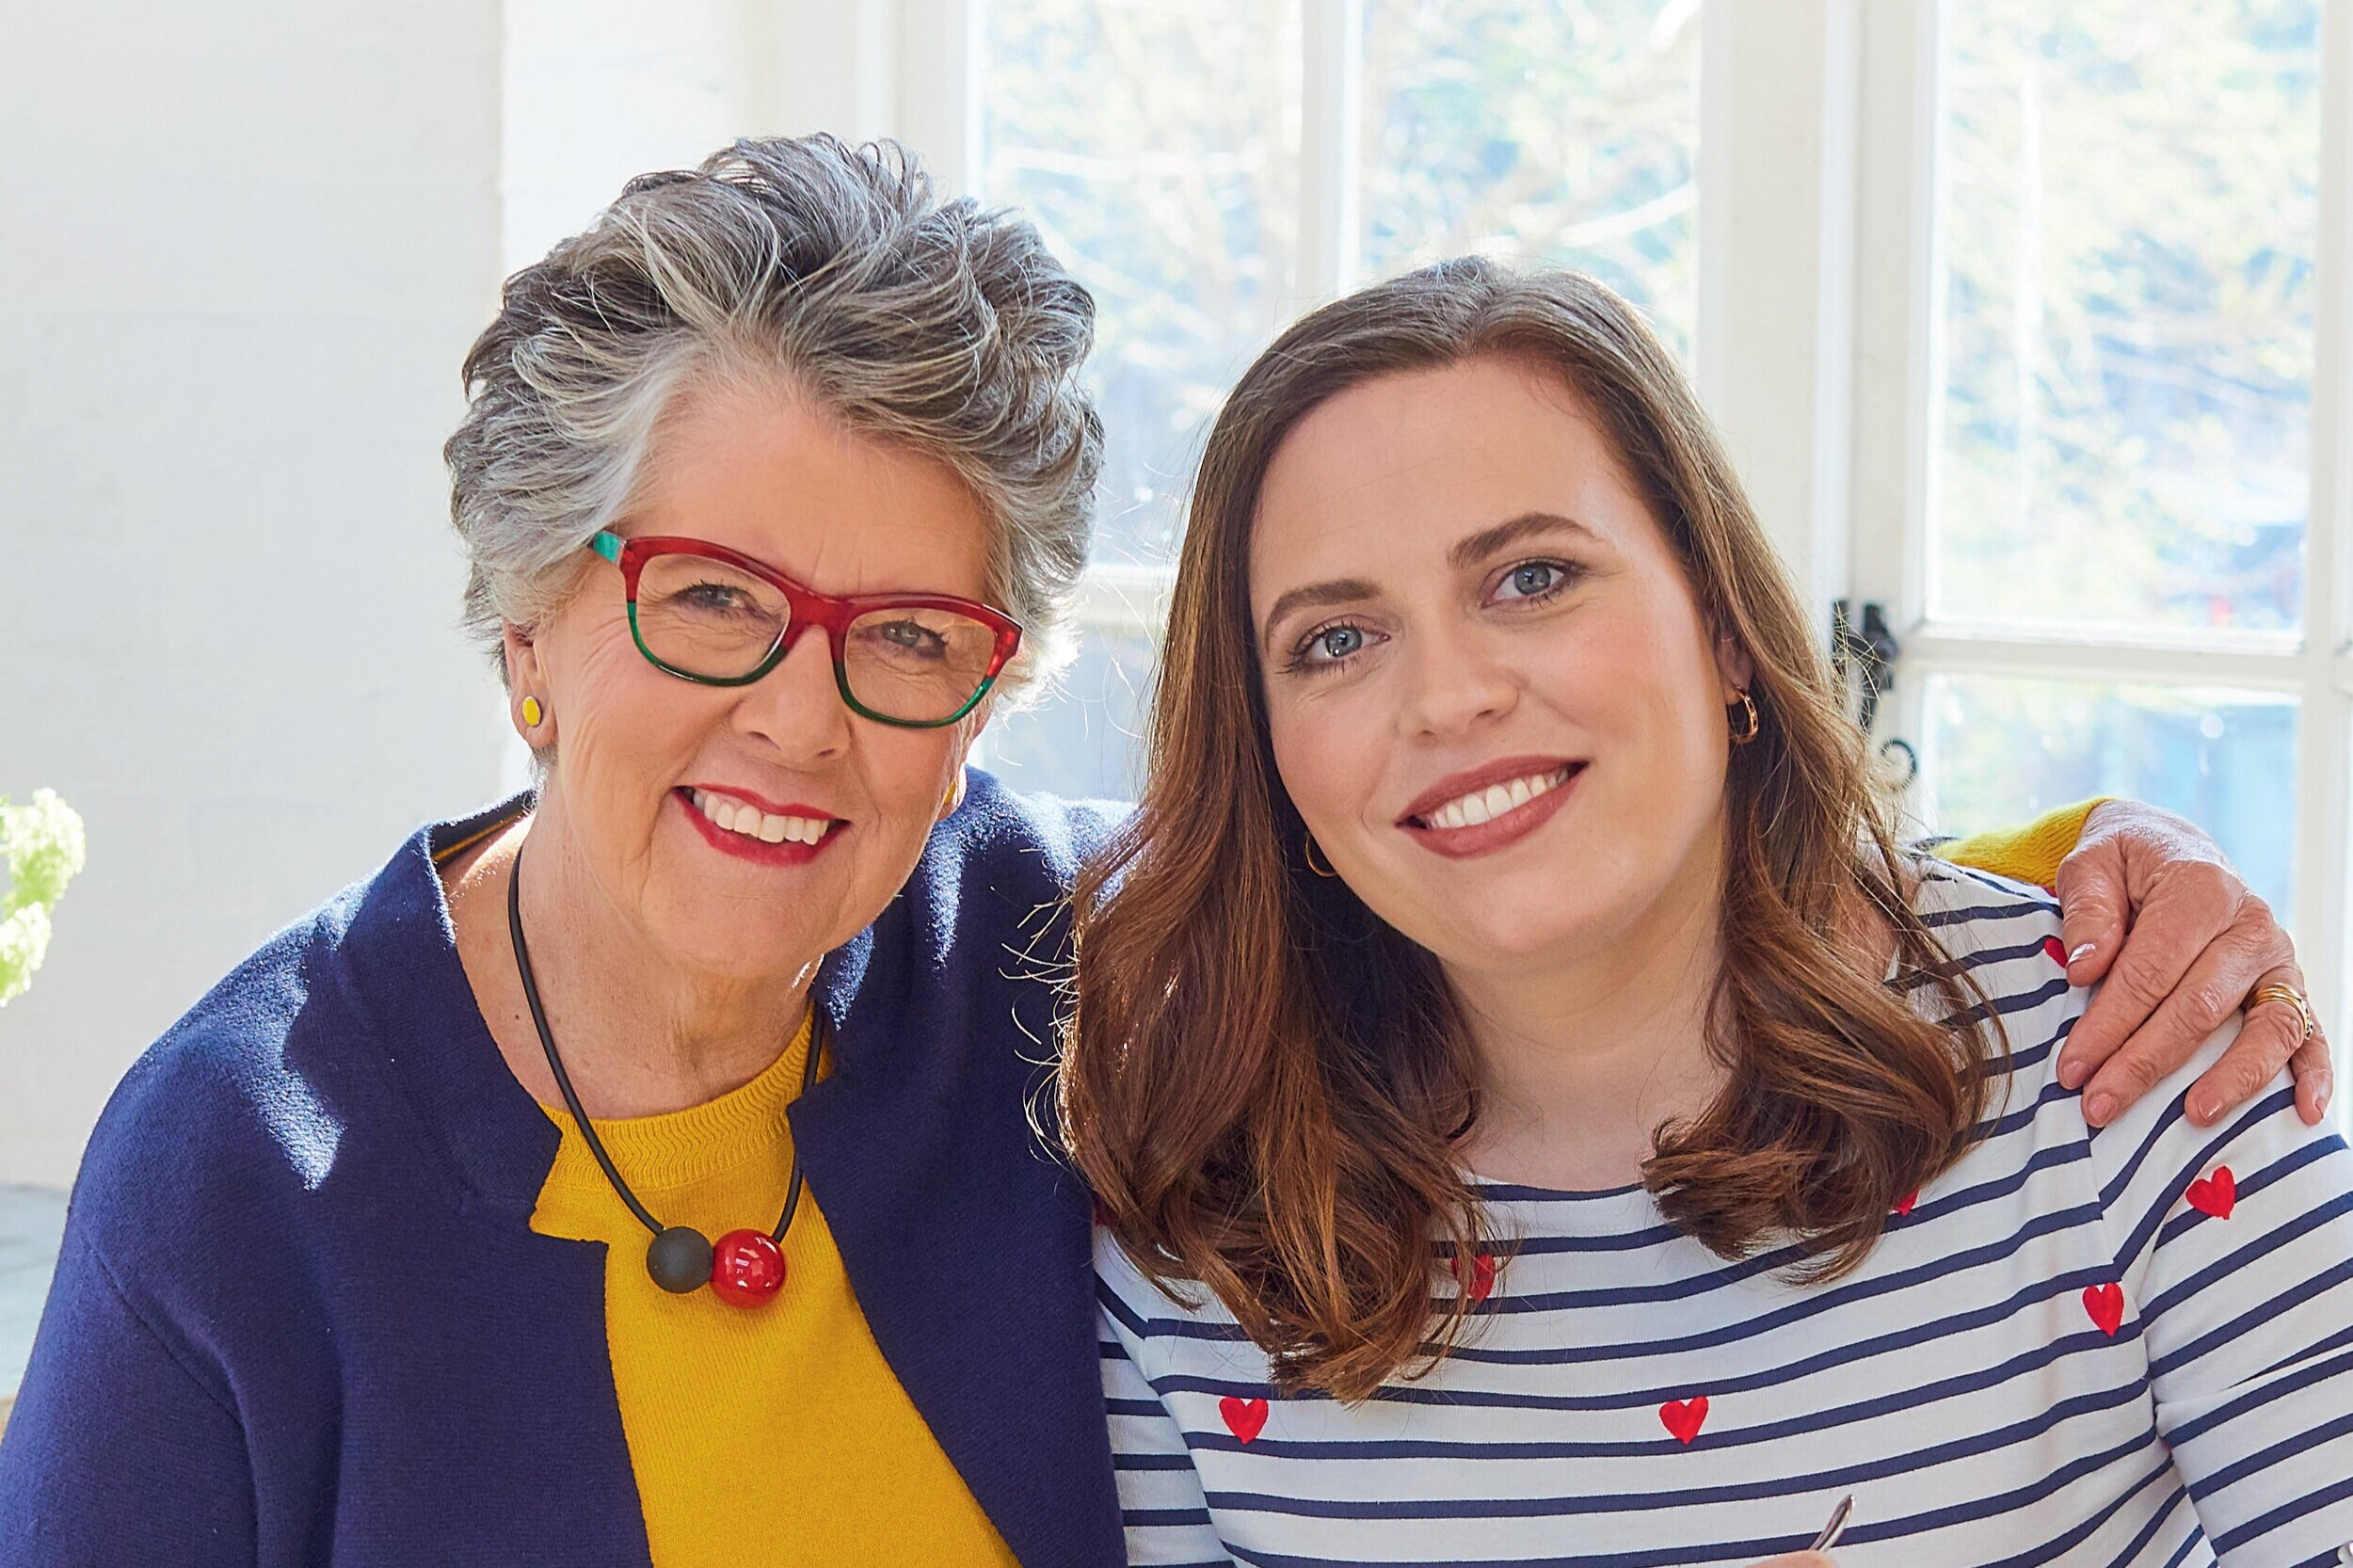 Q&A with Prue Leith and Peta Leith